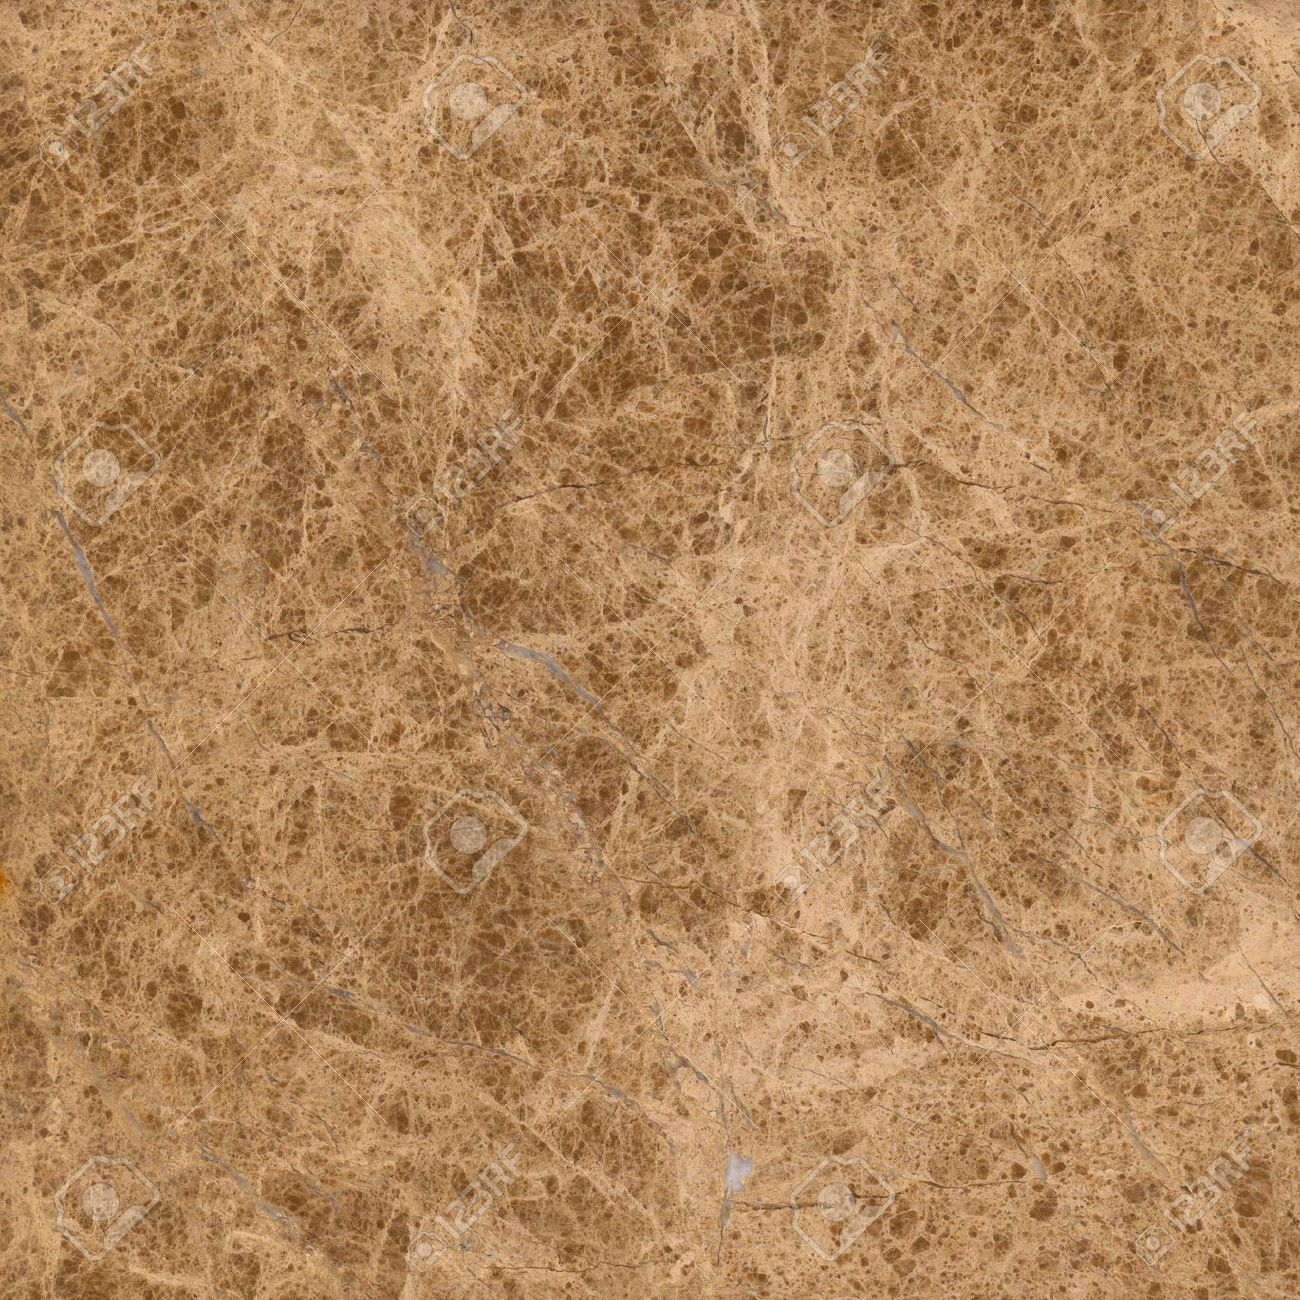 Pin By Mats Rehnman On Texture Marble Texture Marble